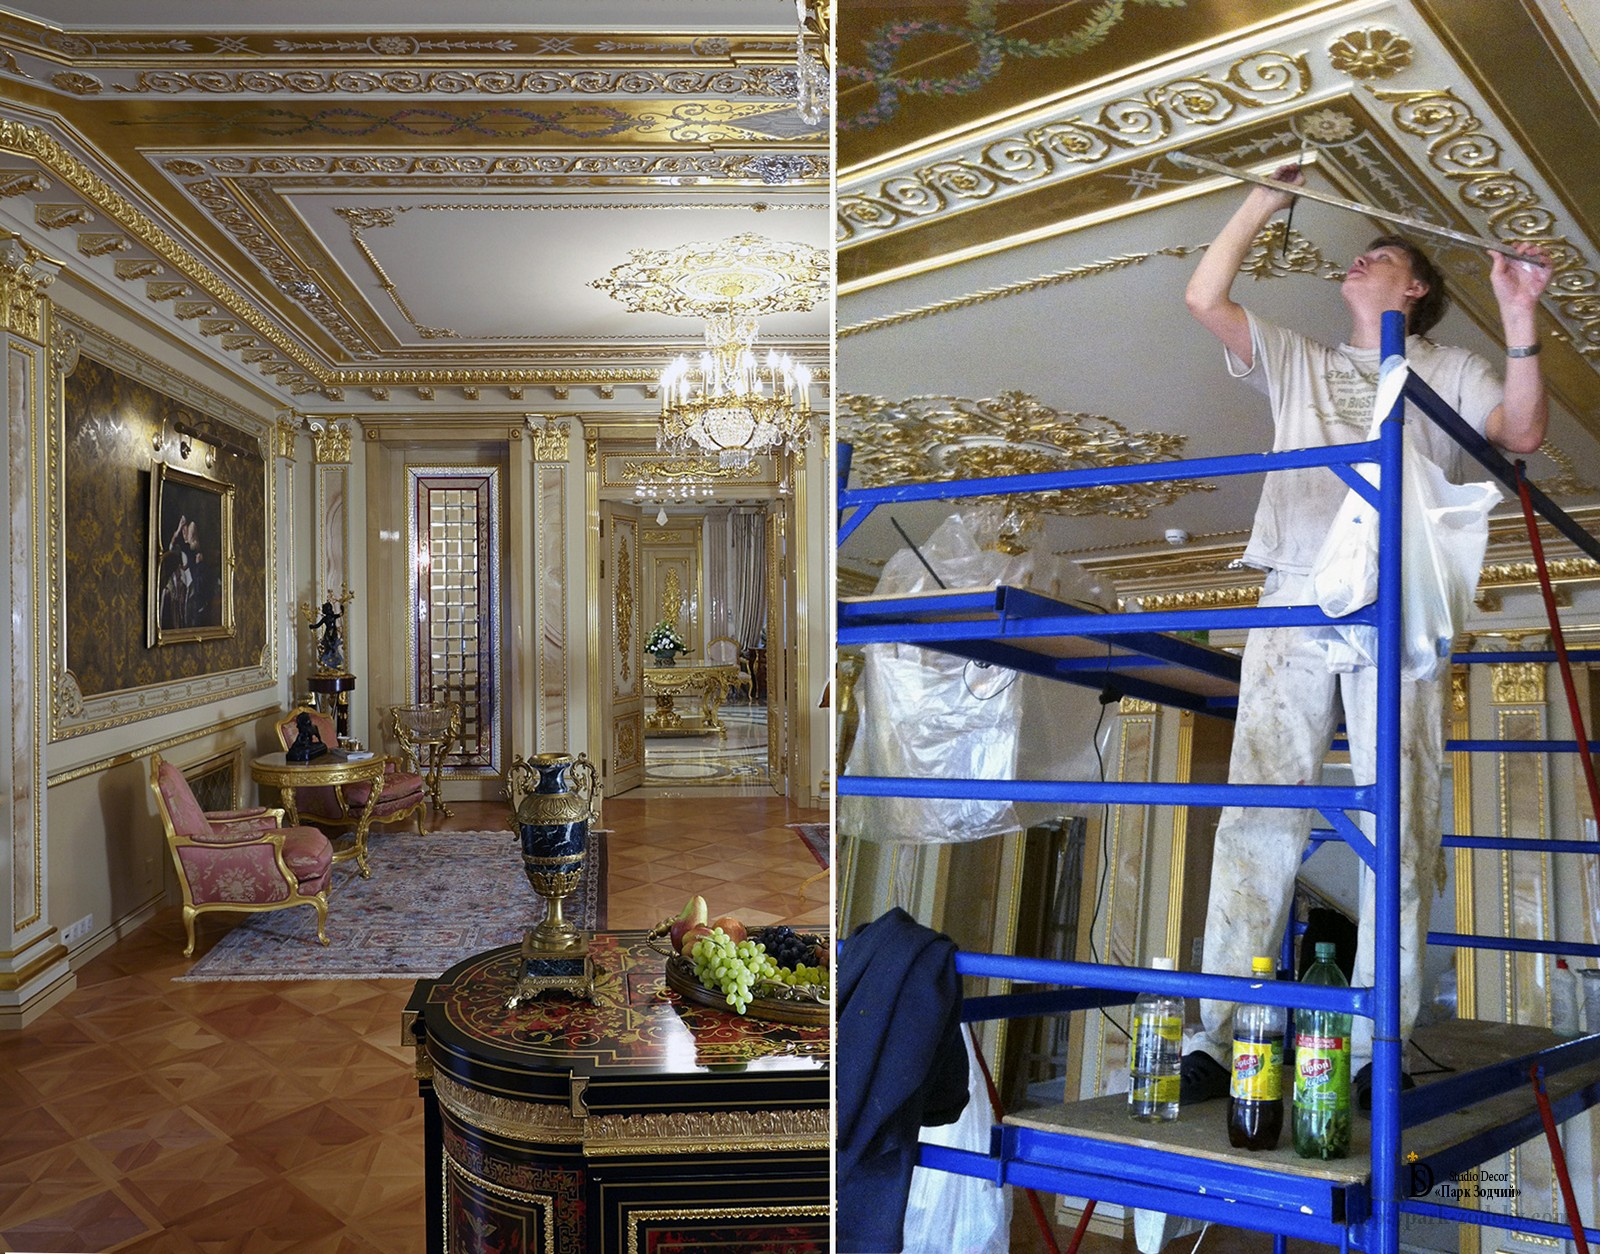 Ceiling painting on gold